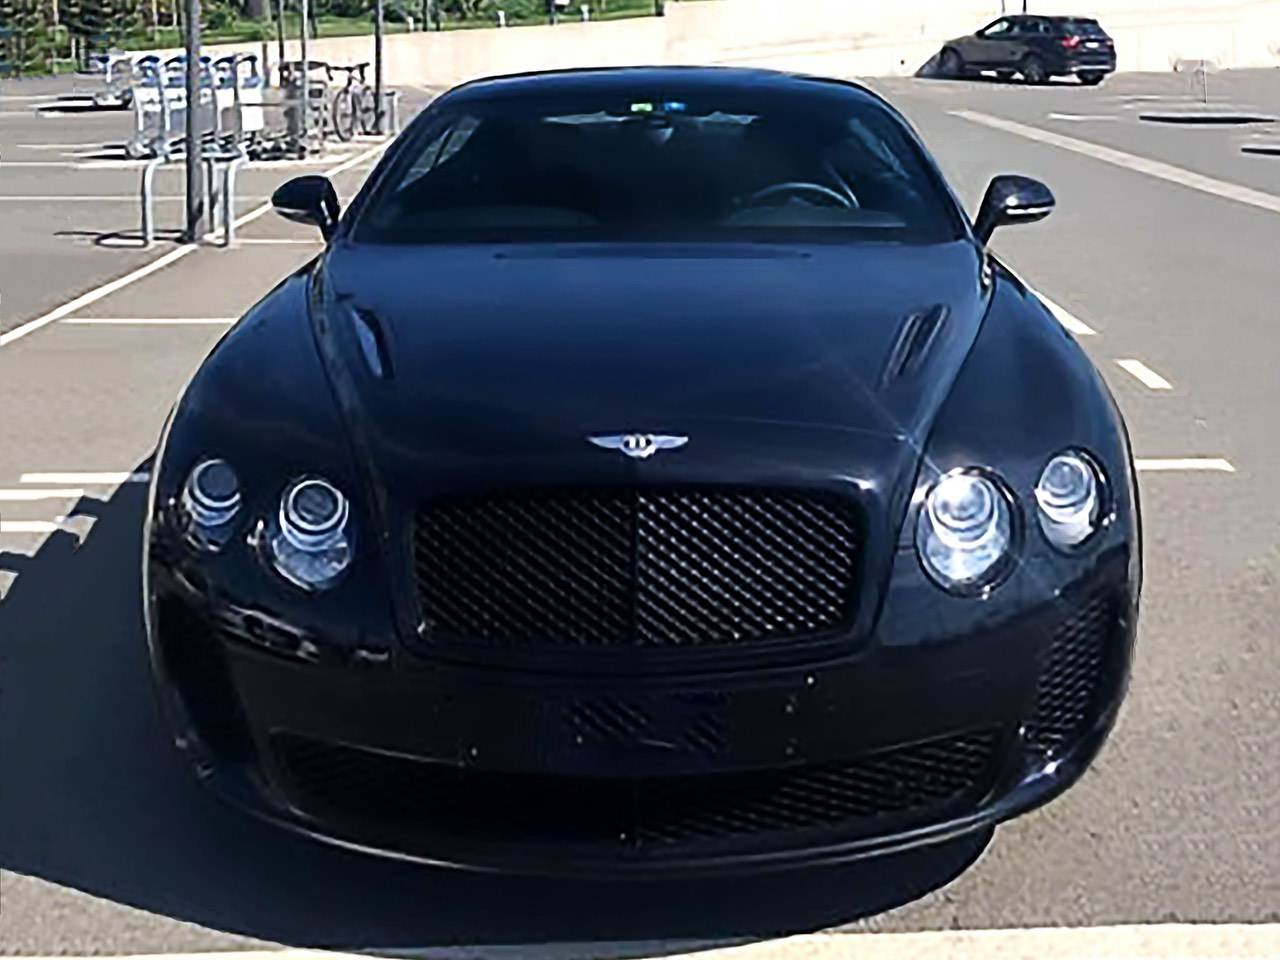 Bentley-Continental-Gt-Supersports-5